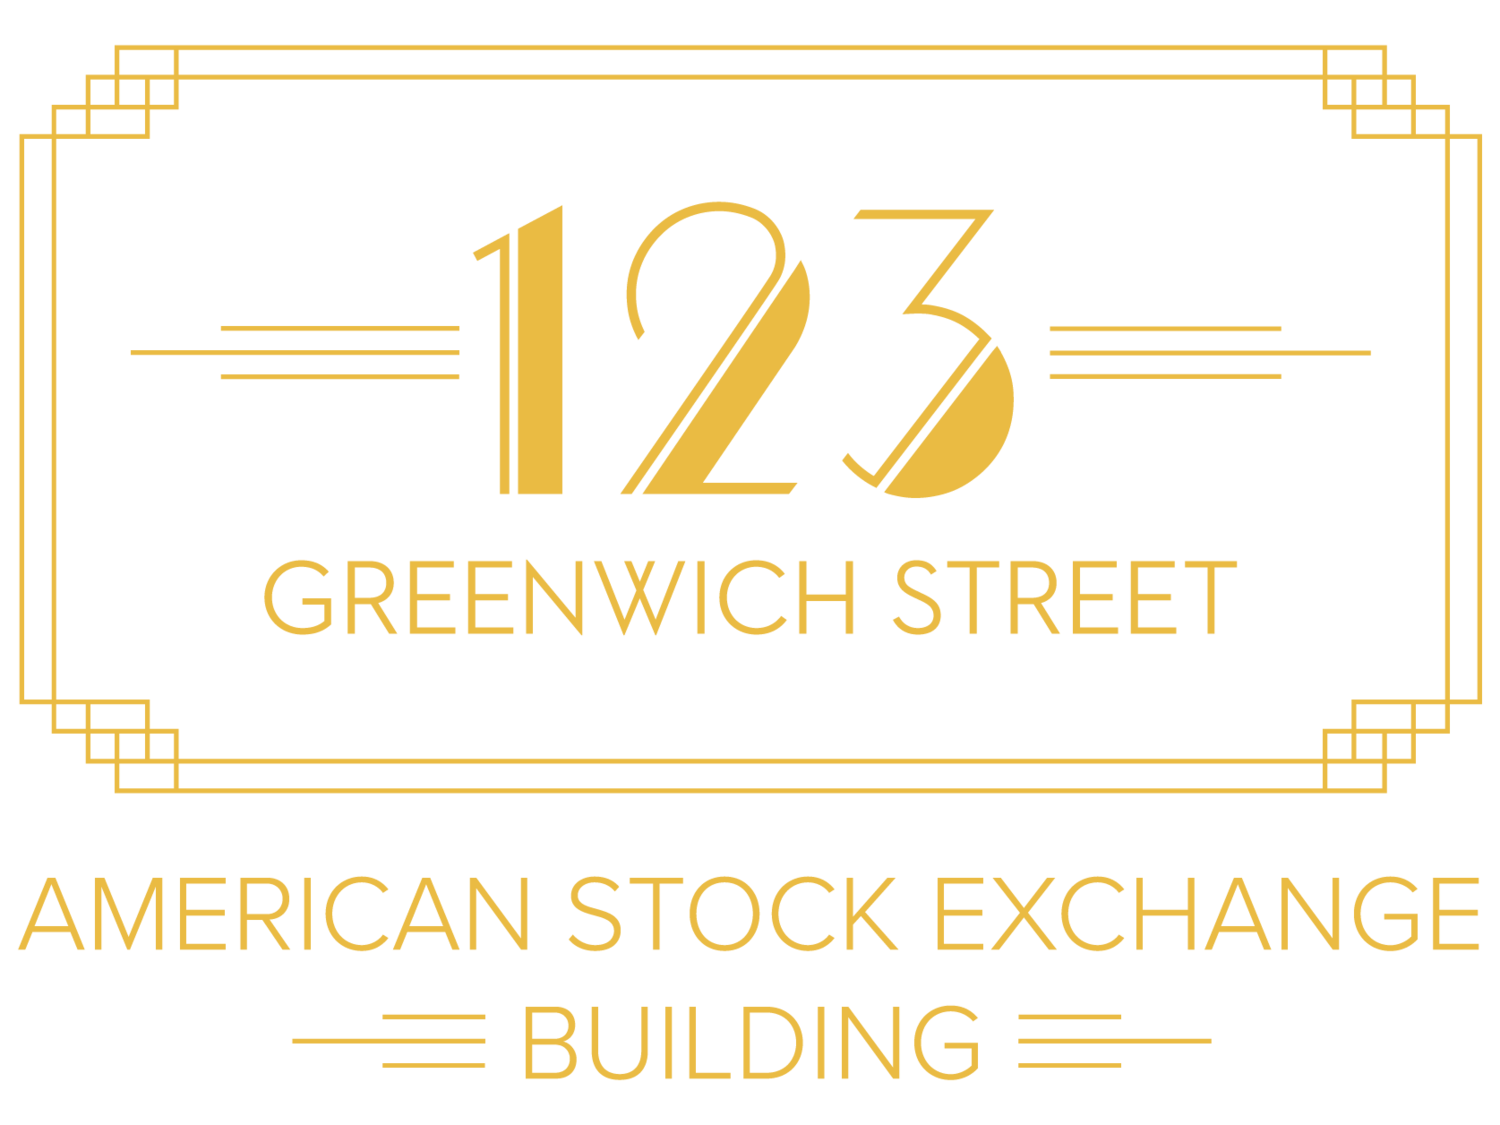 123 Greenwich Street | American Stock Exchange Building